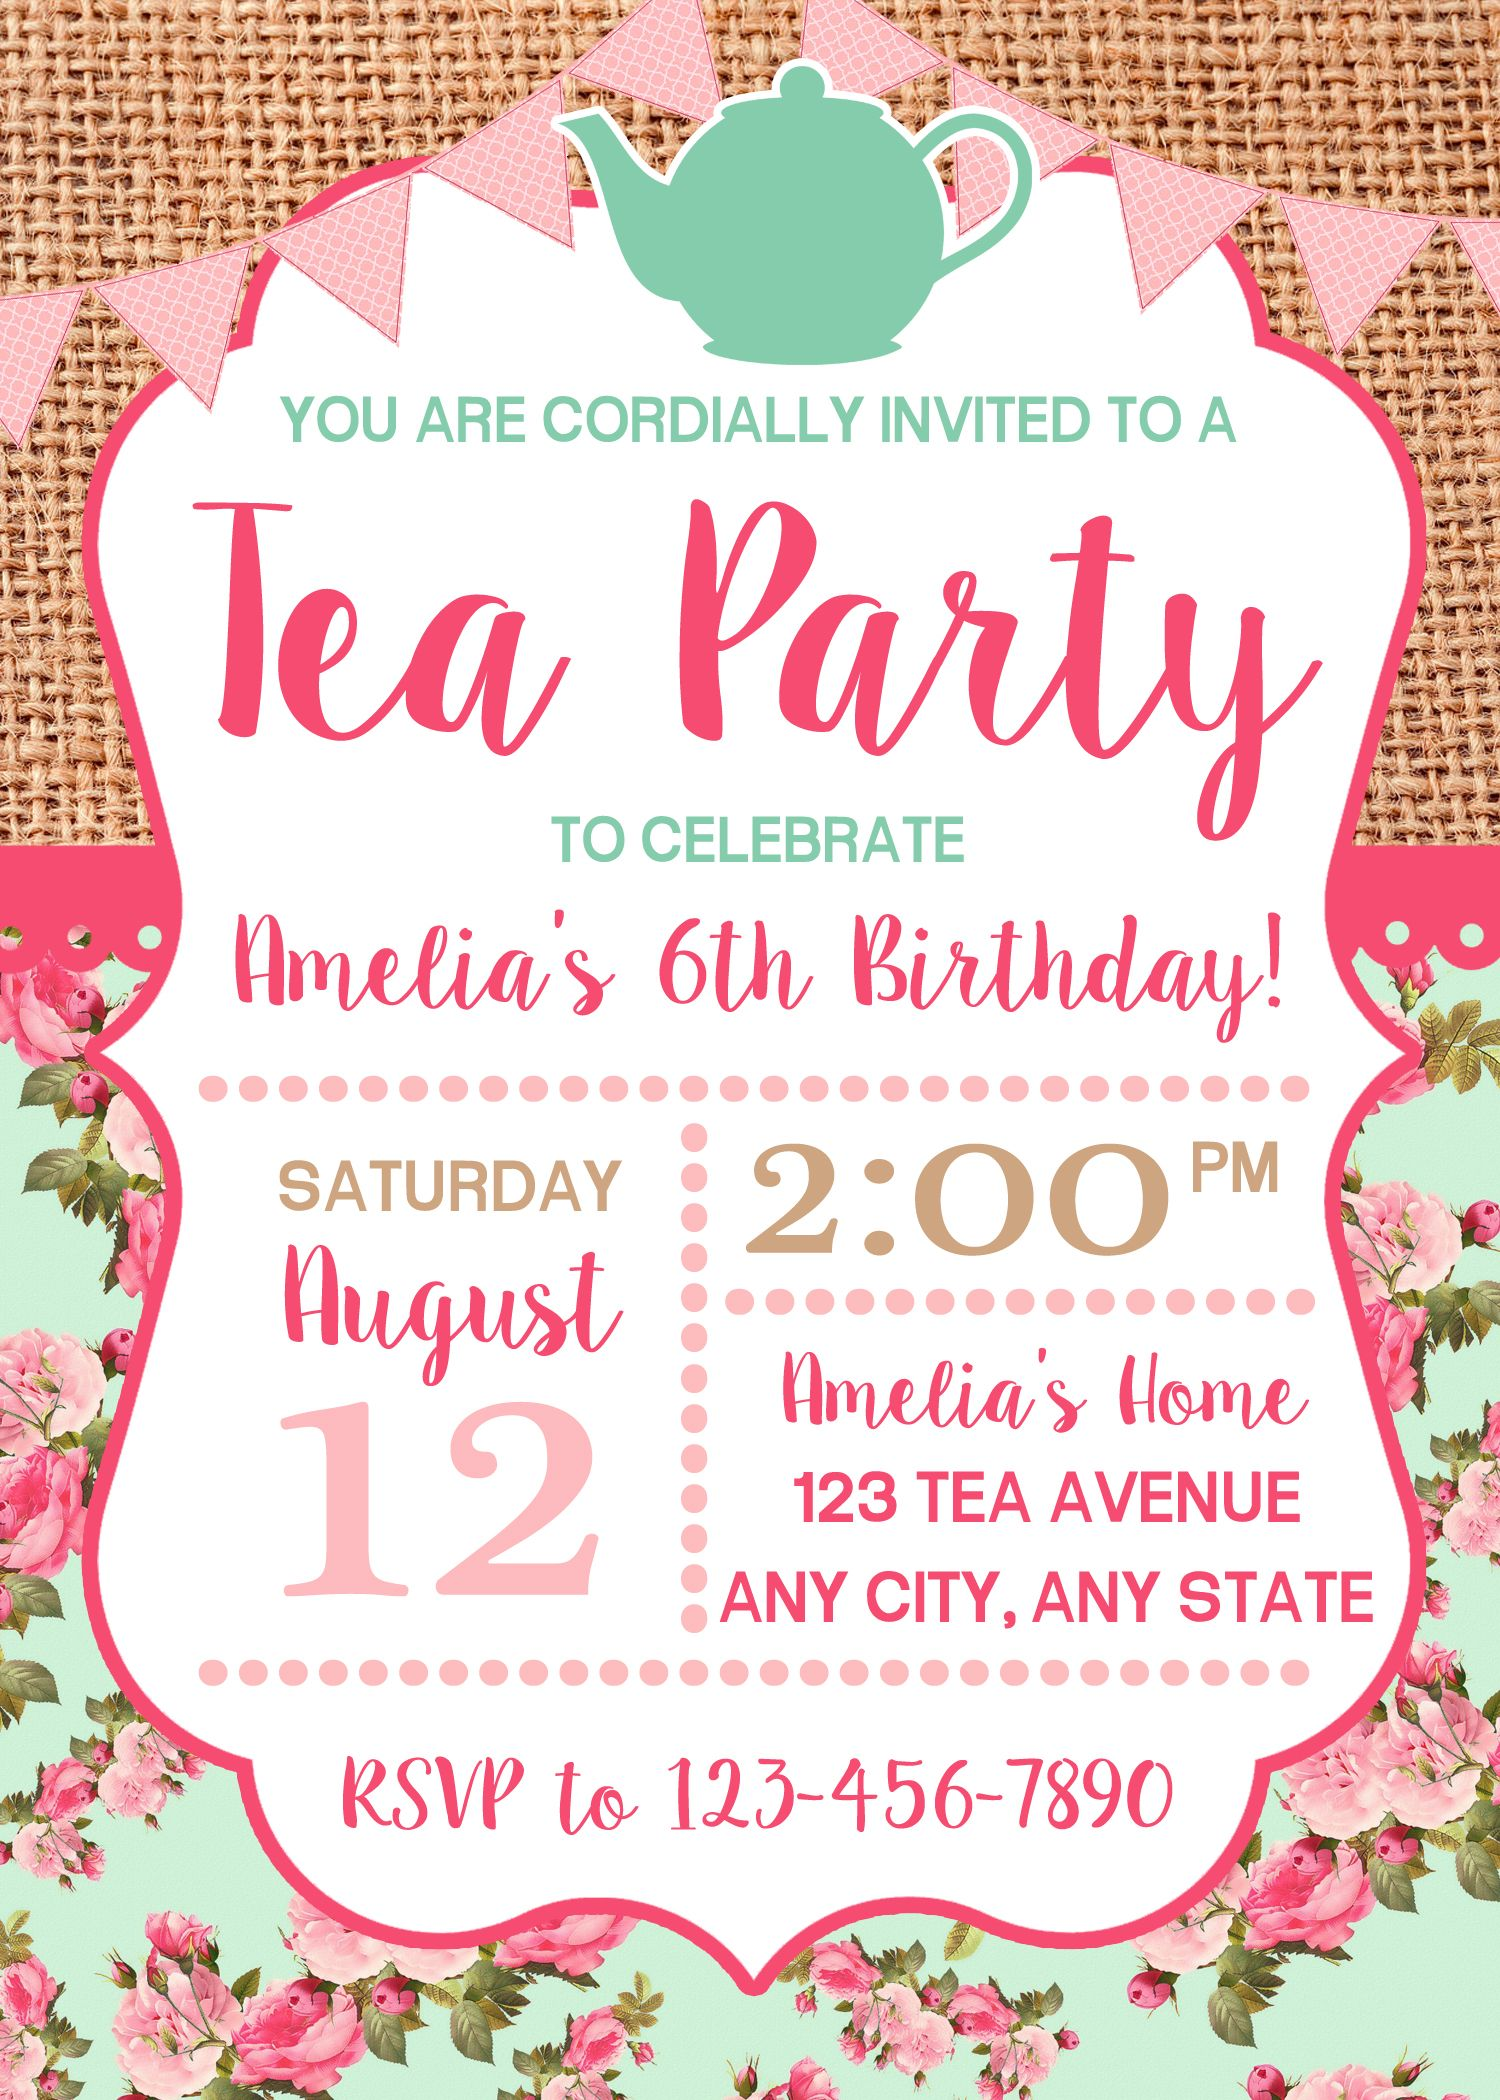 Tea Party Invitation, Birthday Tea Party, Shabby Chic Invitation ...